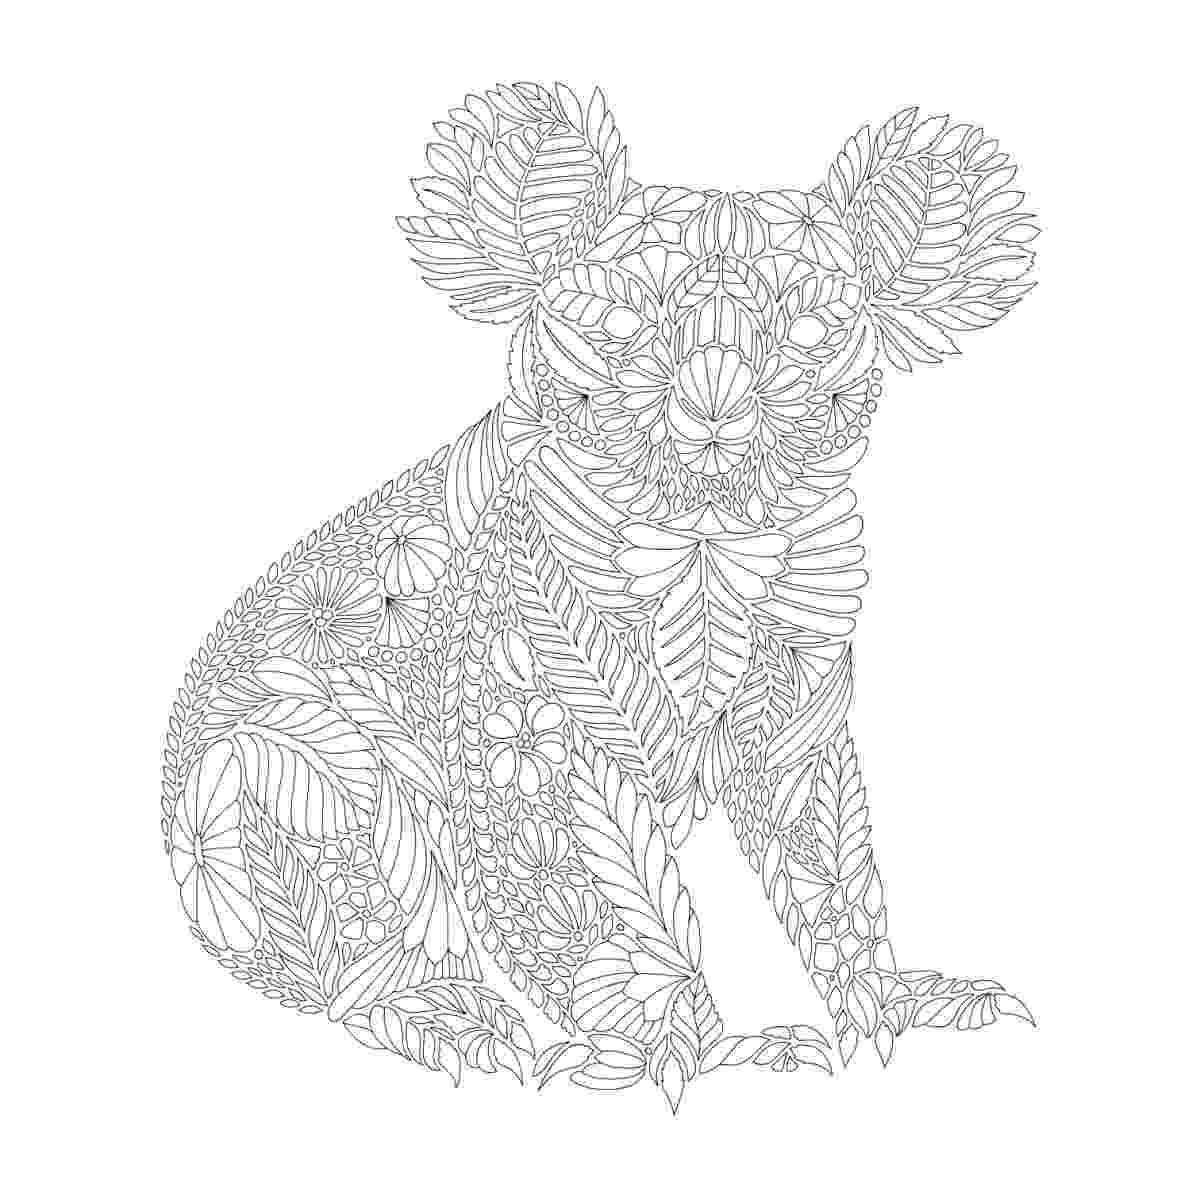 coloring book for adults animal kingdom millie marotta39s animal kingdom colouring book coloring for coloring animal book adults kingdom